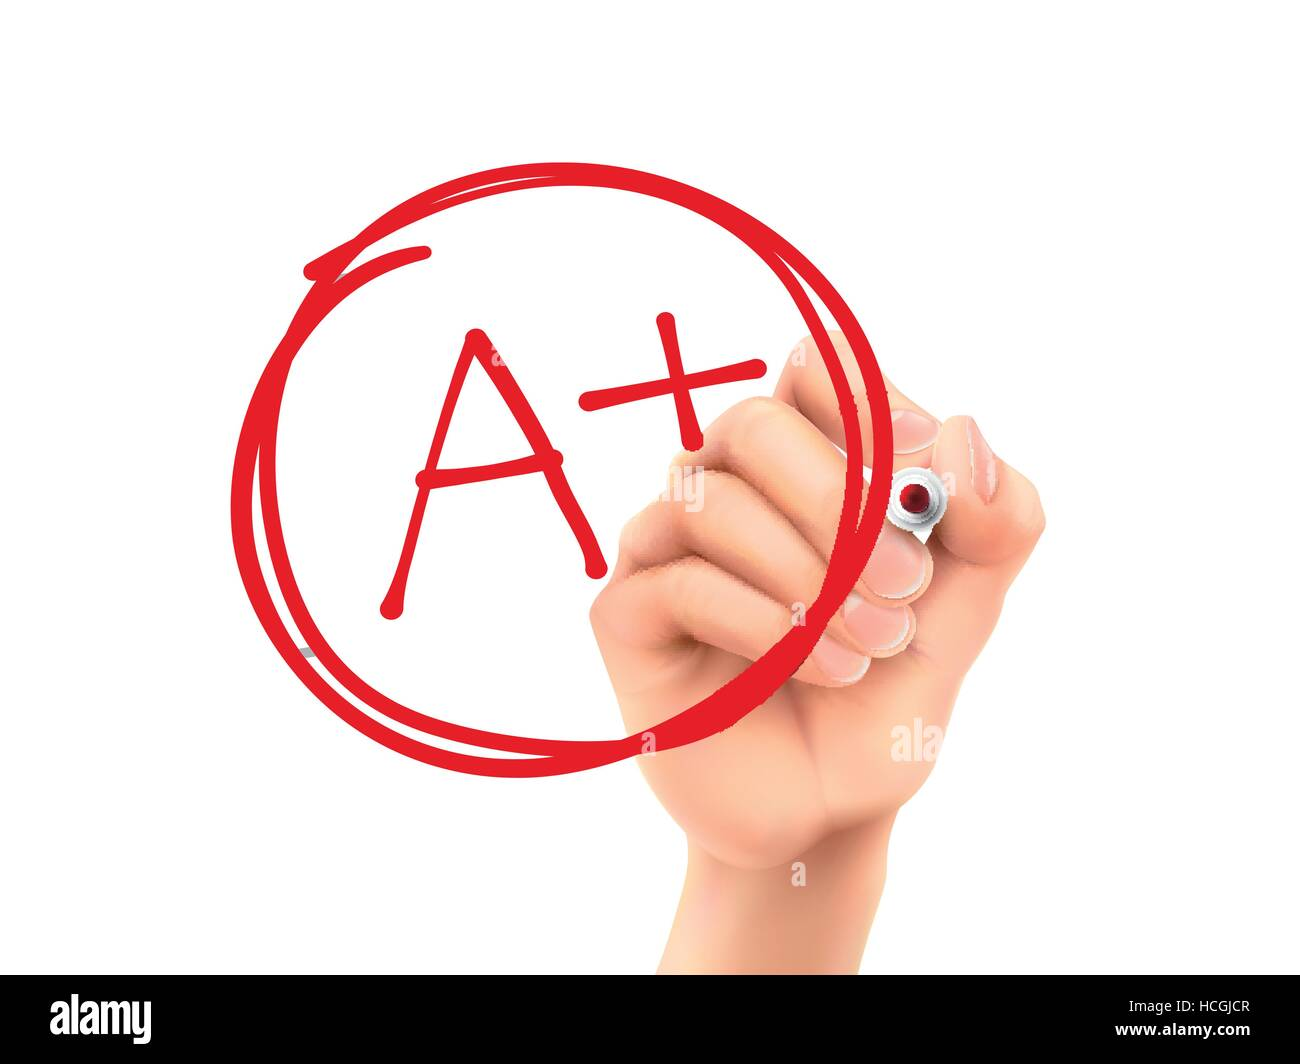 education rating A plus written by 3d hand over white background - Stock Vector